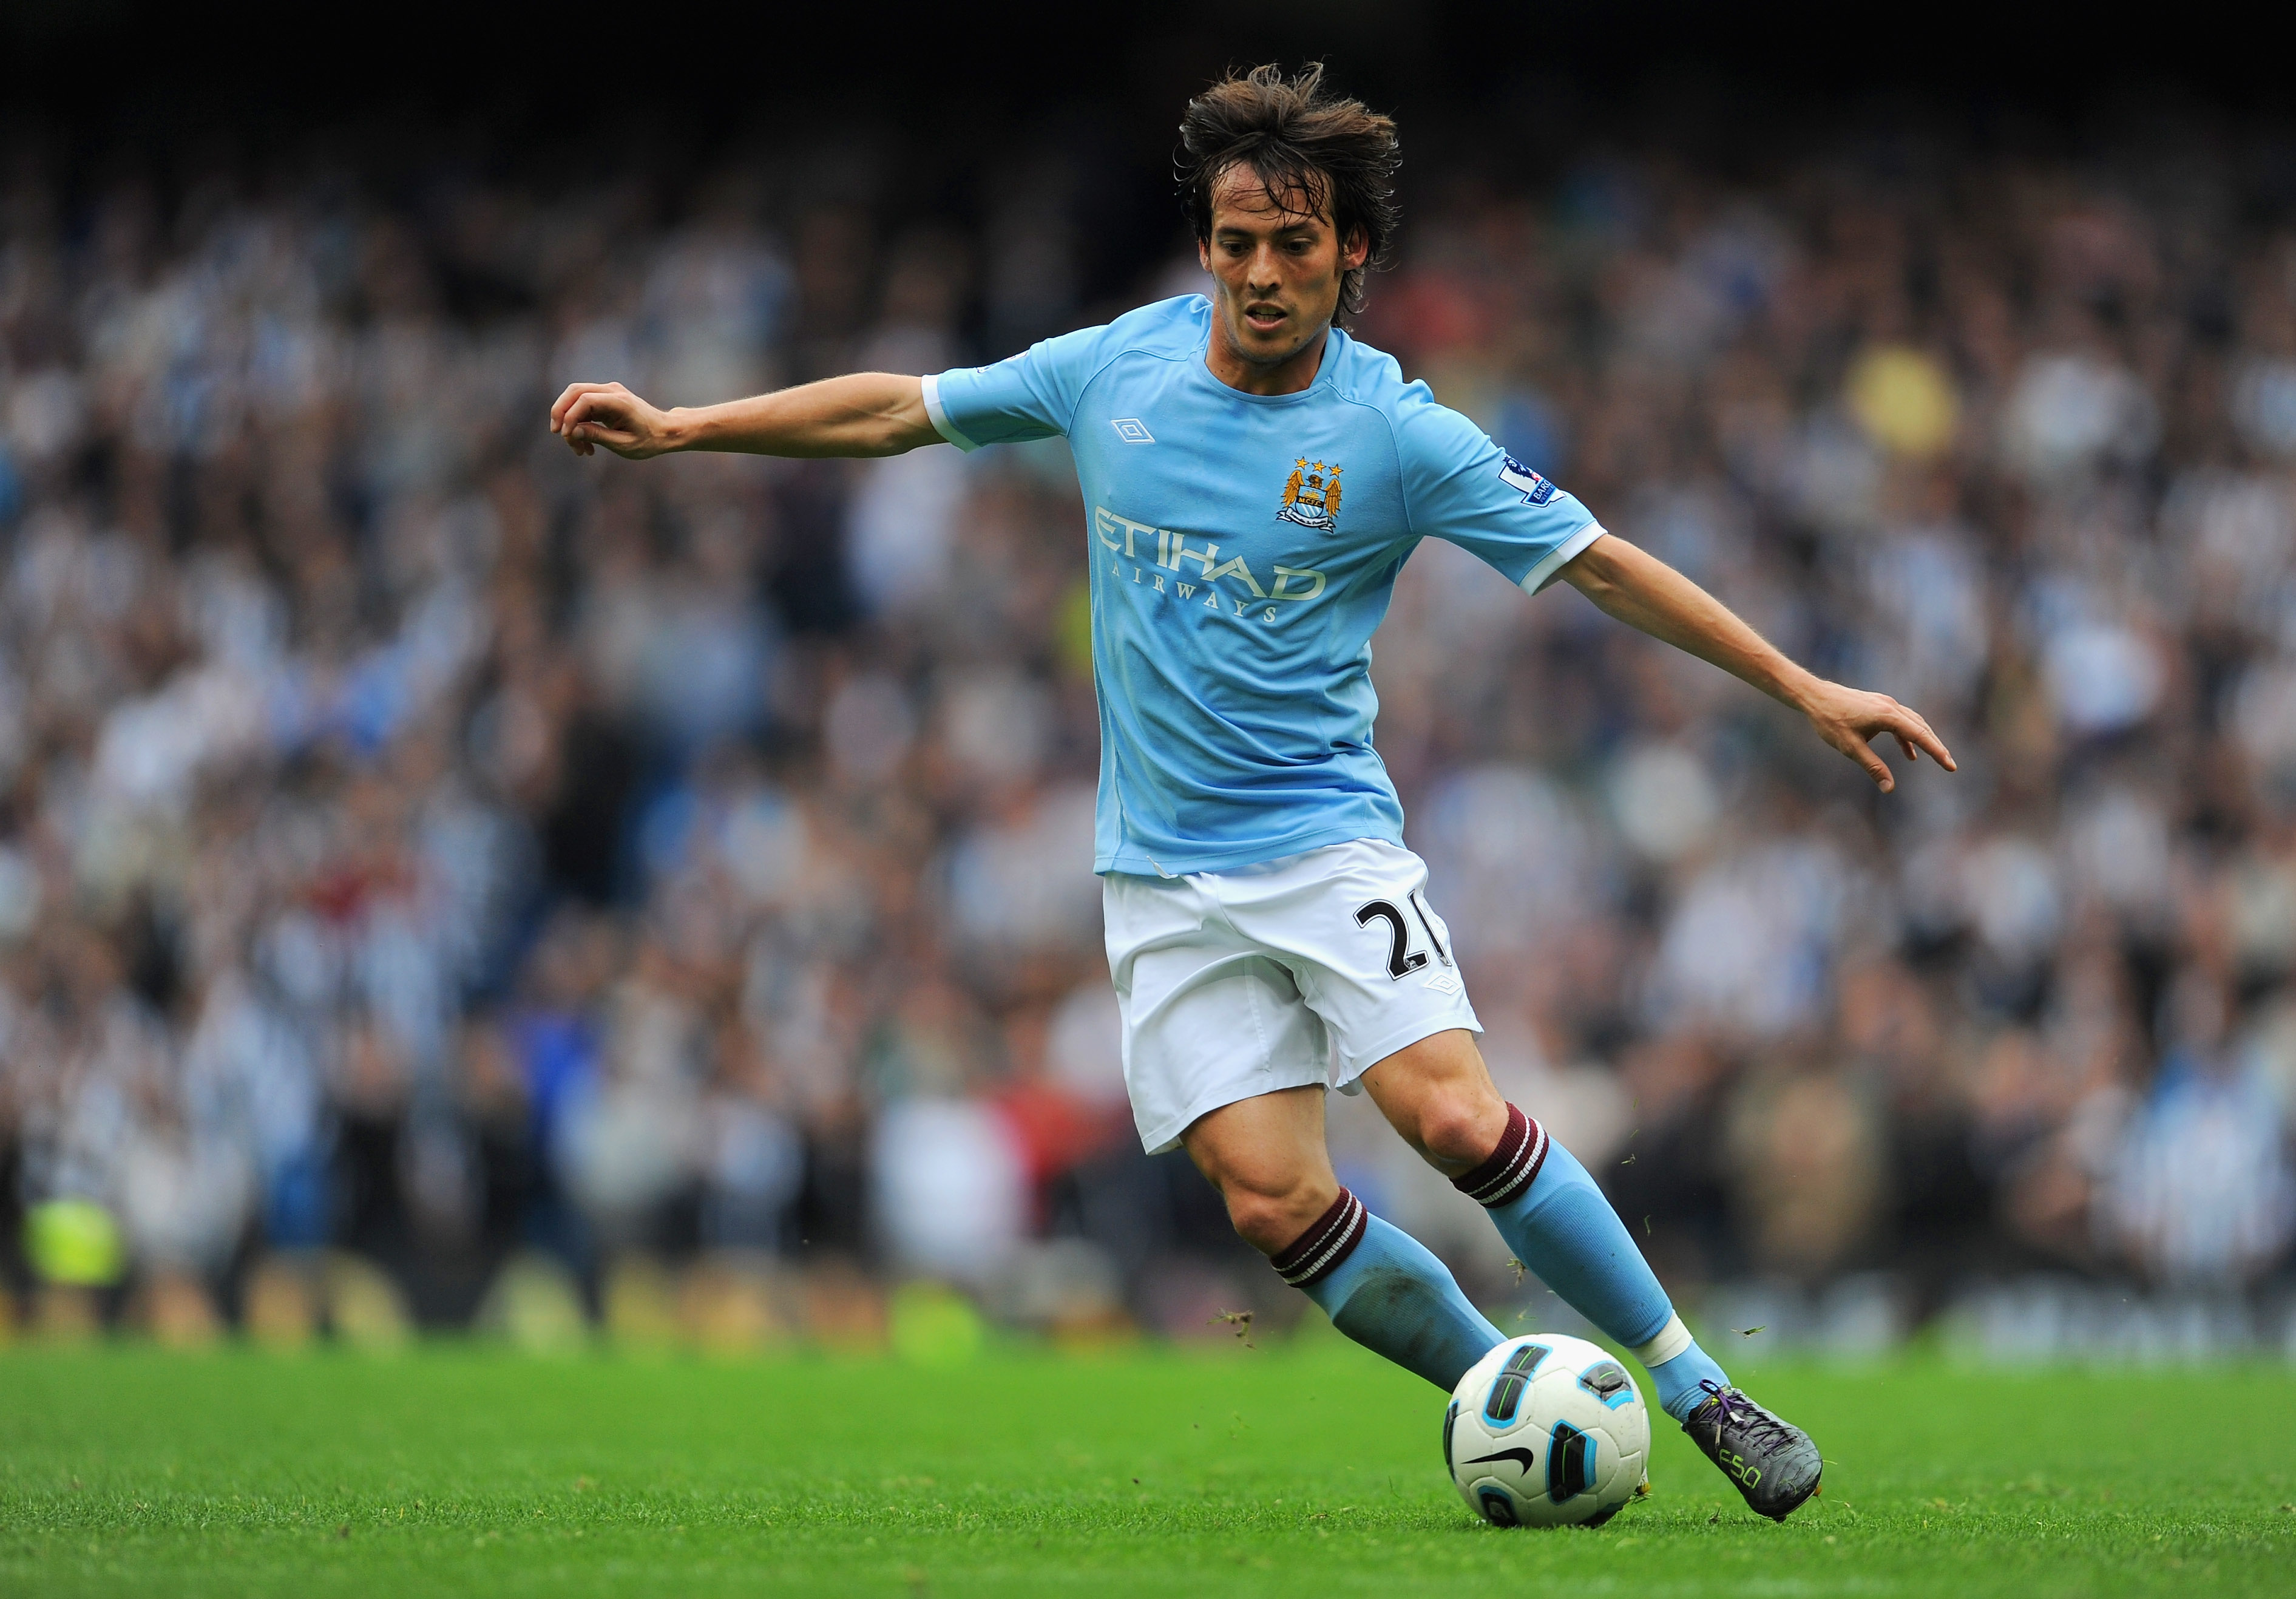 MANCHESTER, ENGLAND - OCTOBER 03: David Silva of Manchester City on the ball during the Barclays Premier League match between Manchester City and Newcastle United at the City of Manchester Stadium on October 3, 2010 in Manchester, England.  (Photo by Mich